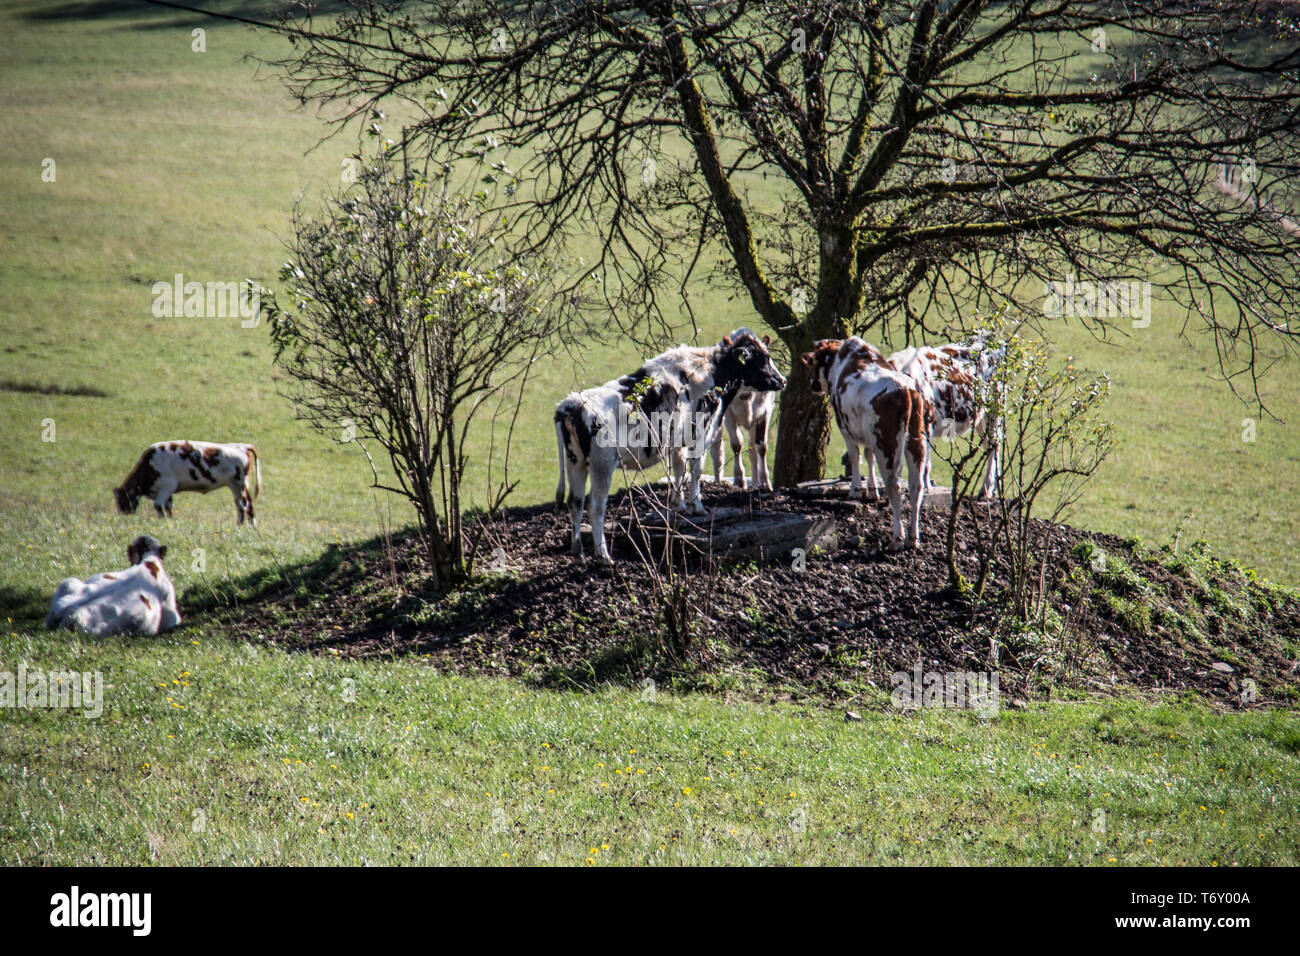 Cows seek shade under tree Stock Photo